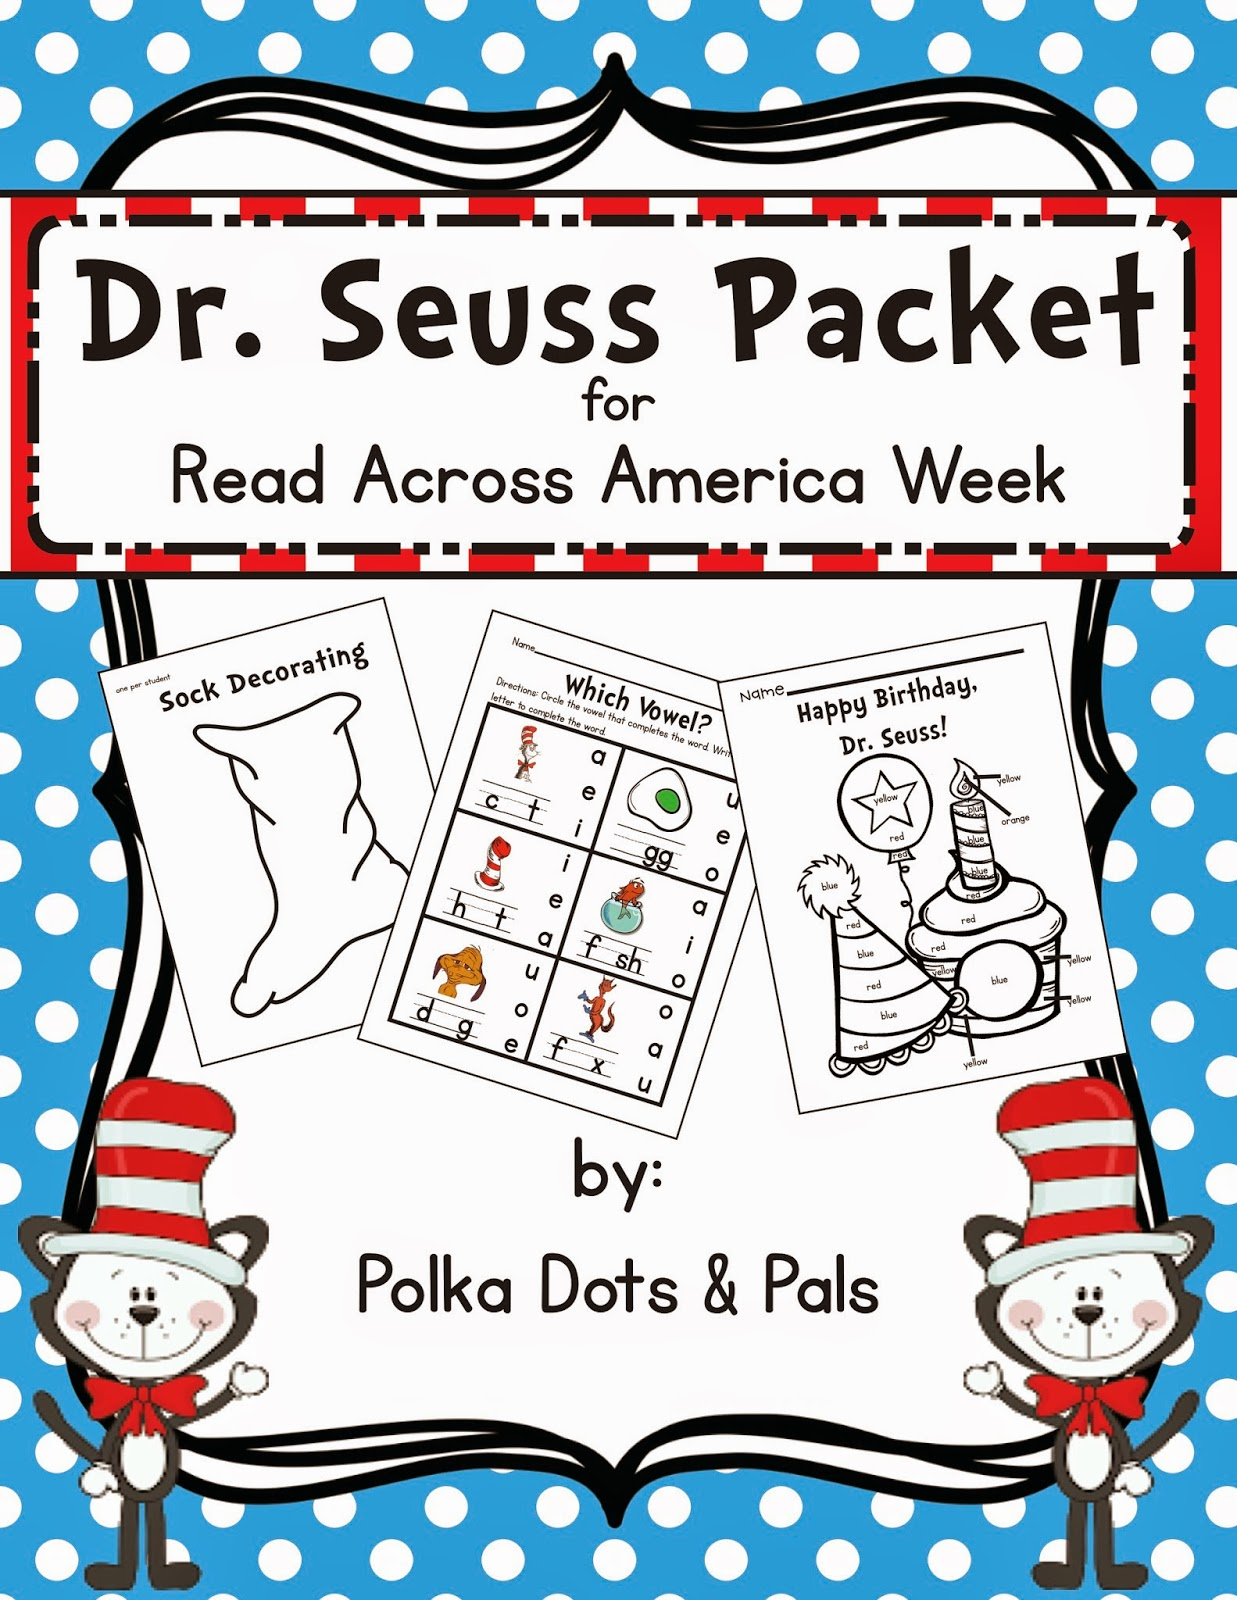 Polka Dots And Pals Dr Seuss Packet Just In Time For Read Across America Week